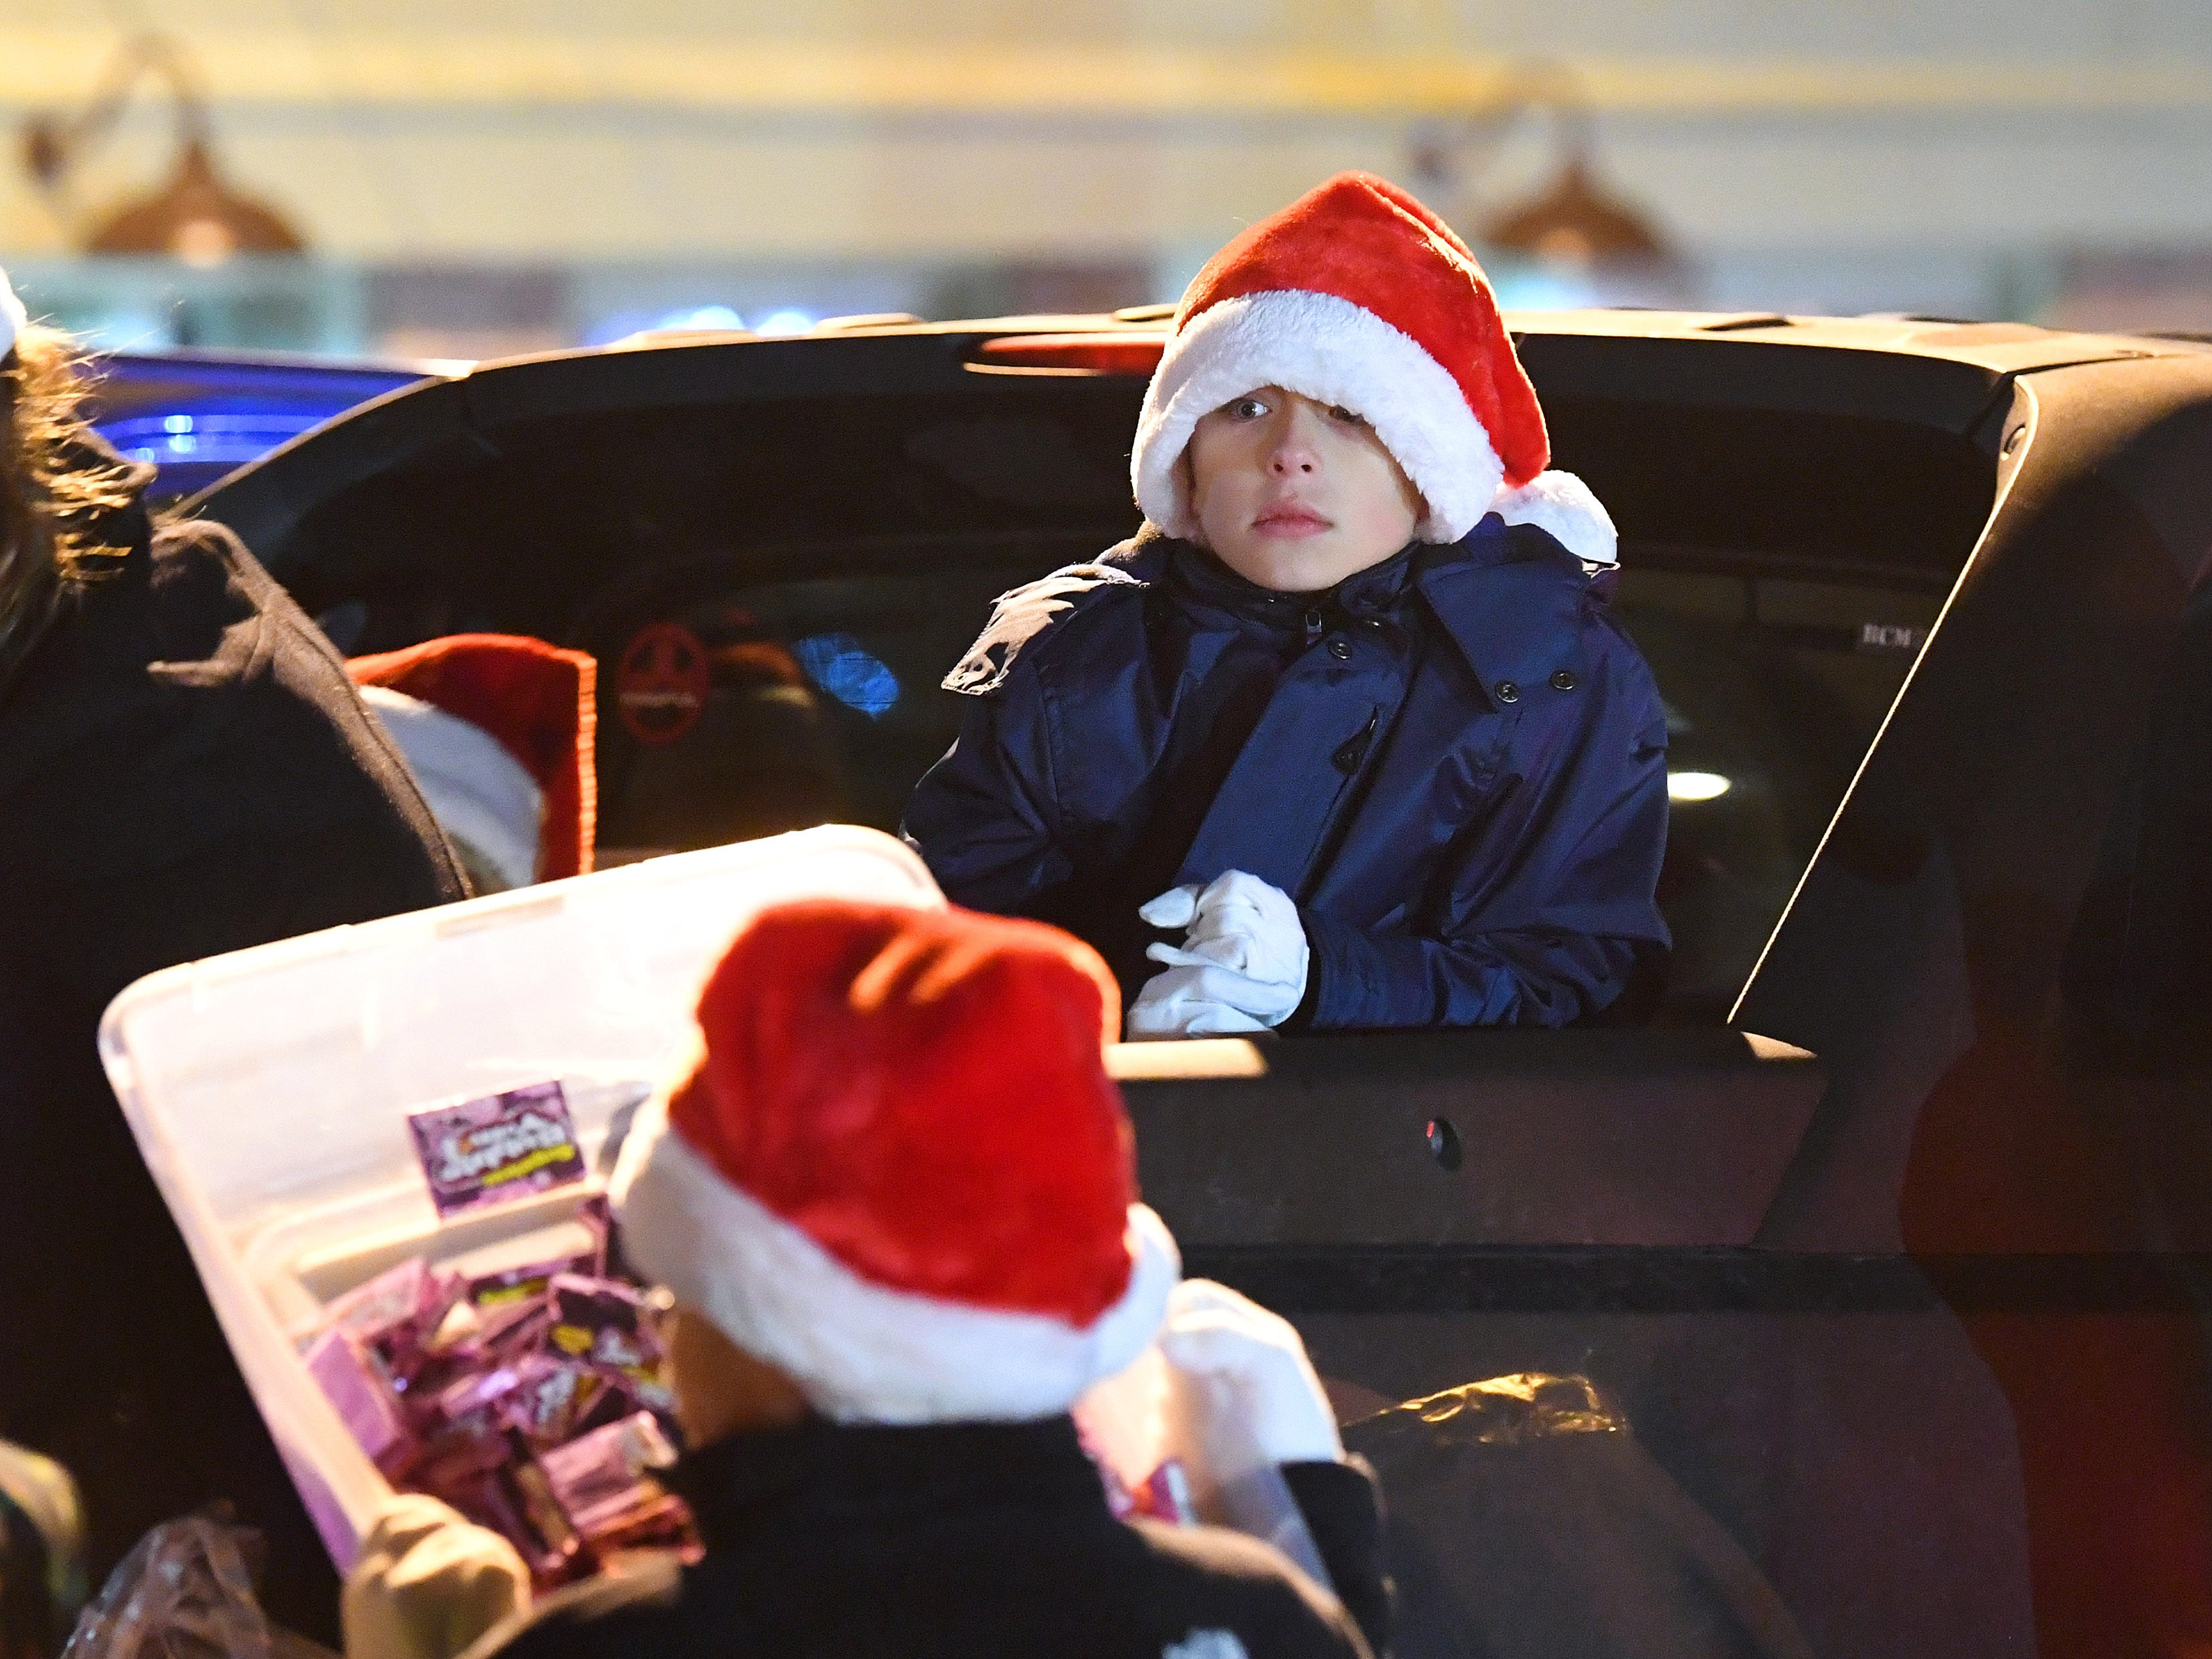 A young parade participant waits with others on a float for the Staunton Christmas Parade to begin on Monday, Nov. 26, 2018.